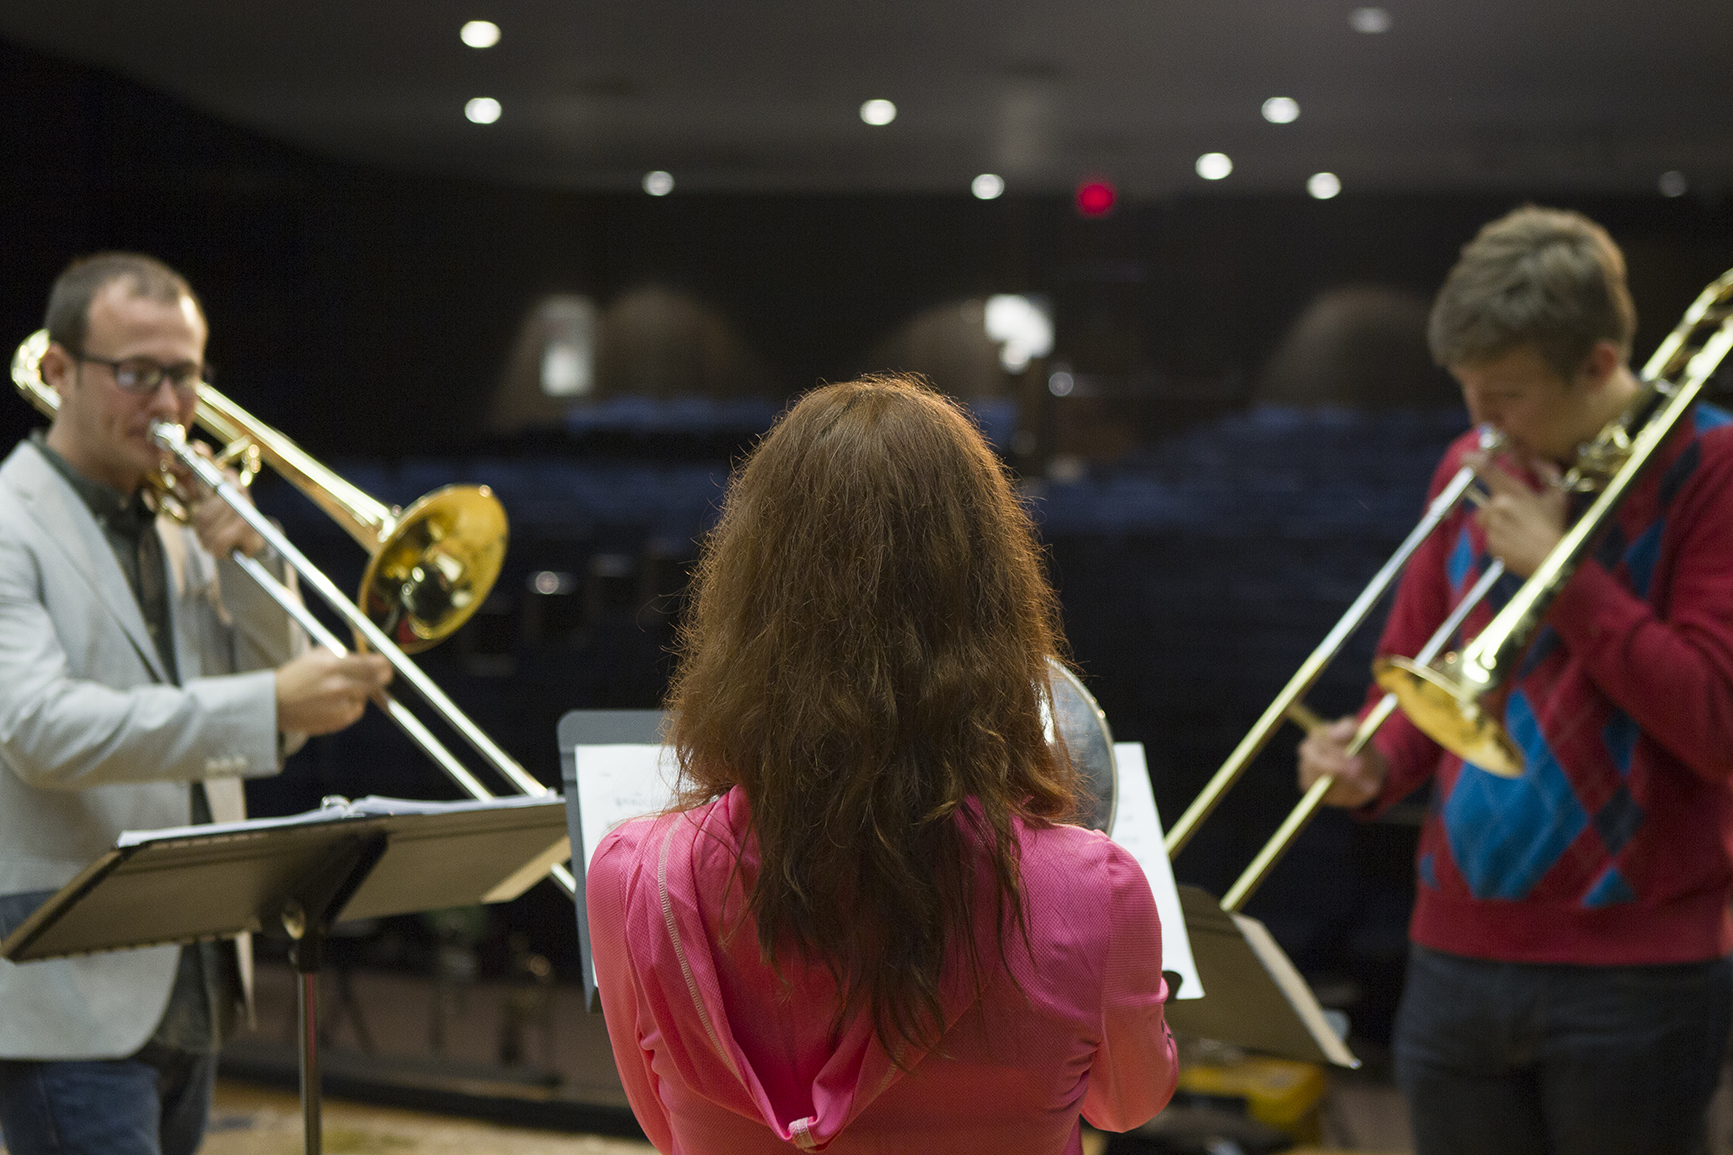 Students Mikayla Murphy, center, and Brad Halloran, right, practice Monday during a rehearsal with Caleb Ketcham from visiting band Masterworks 6.